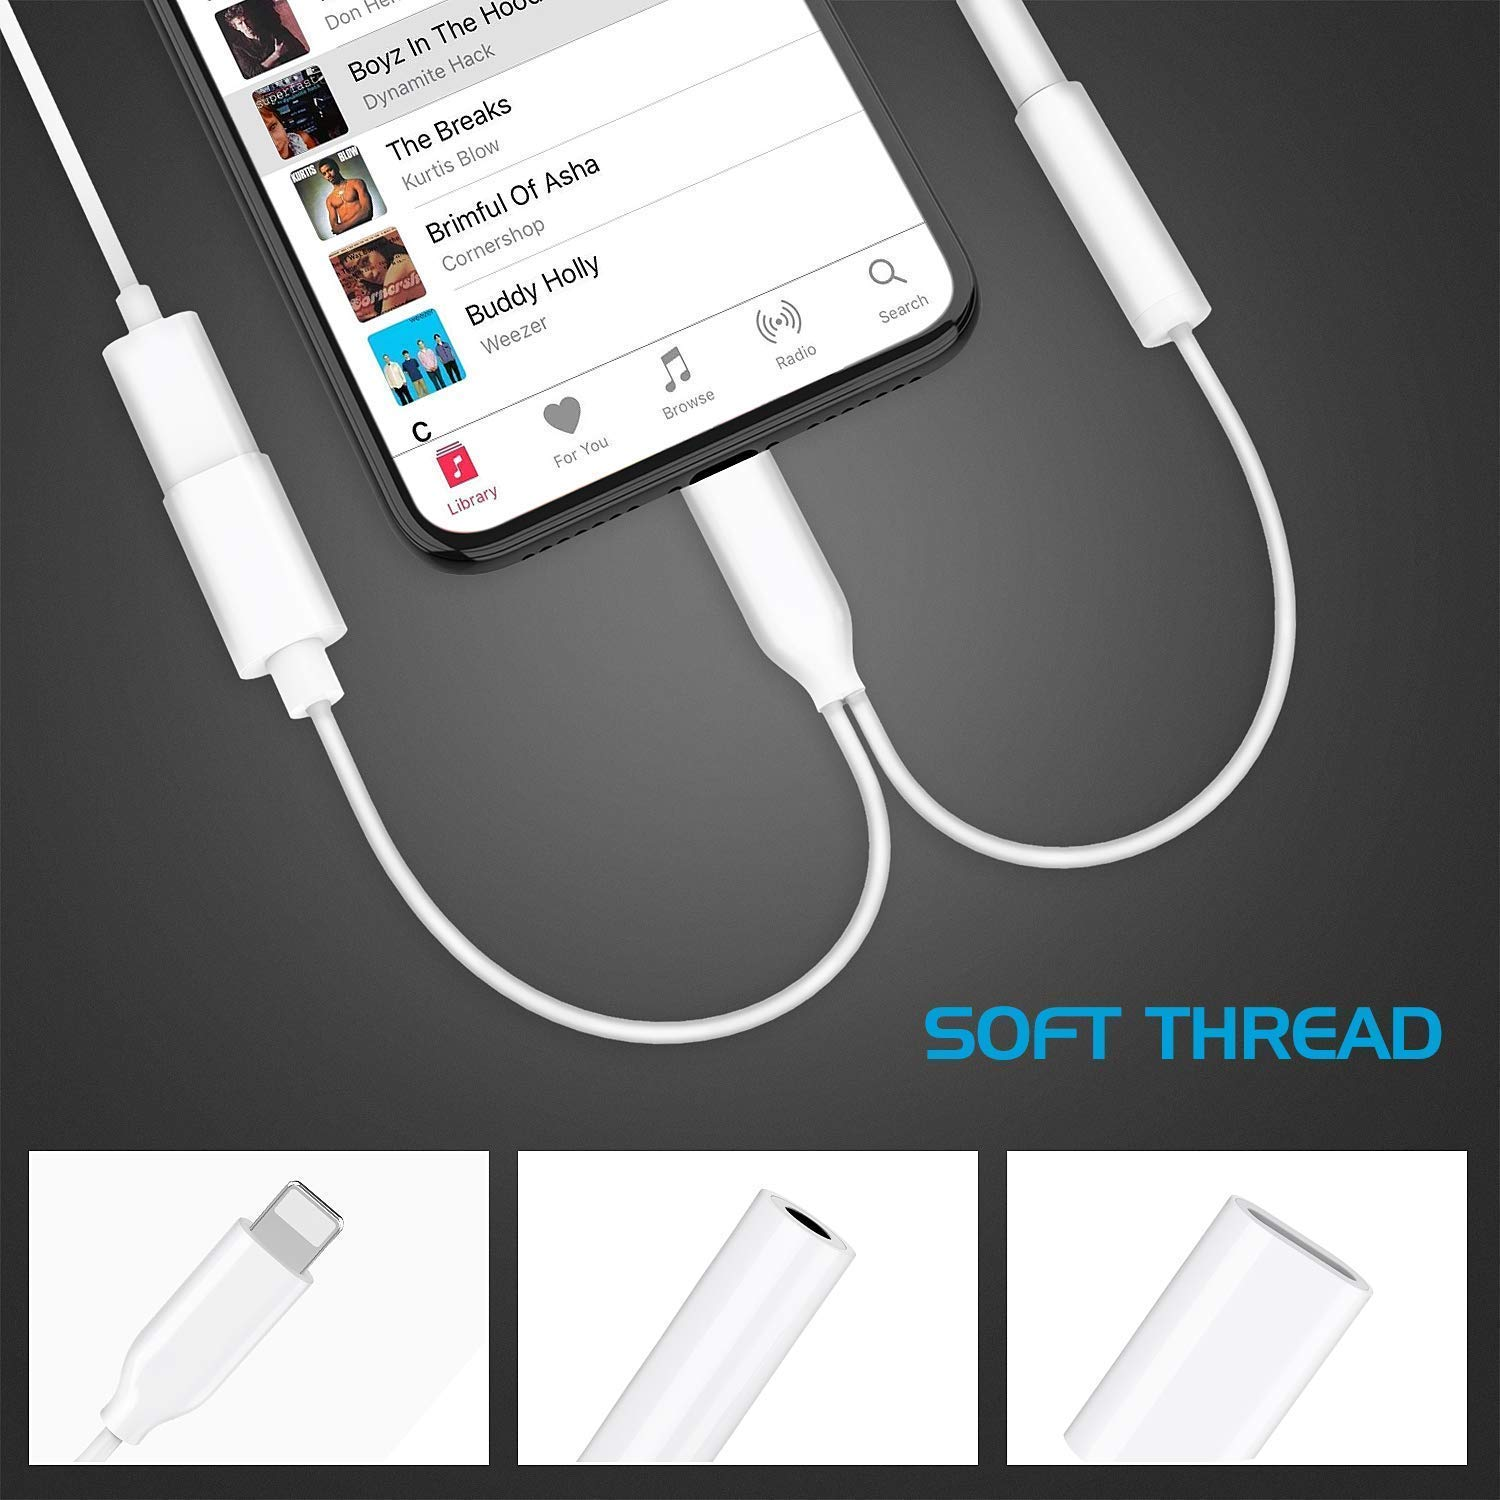 Headphone Adapter for iPhone Adapter Aux Audio to 3.5mm 2 in 1 Jack Cables Dongle for iPhone 7 Earphone Splitter Adapter for iPhone 8 Plus//X//XR//Xs Music and Charging Compatible Support All iOS-White